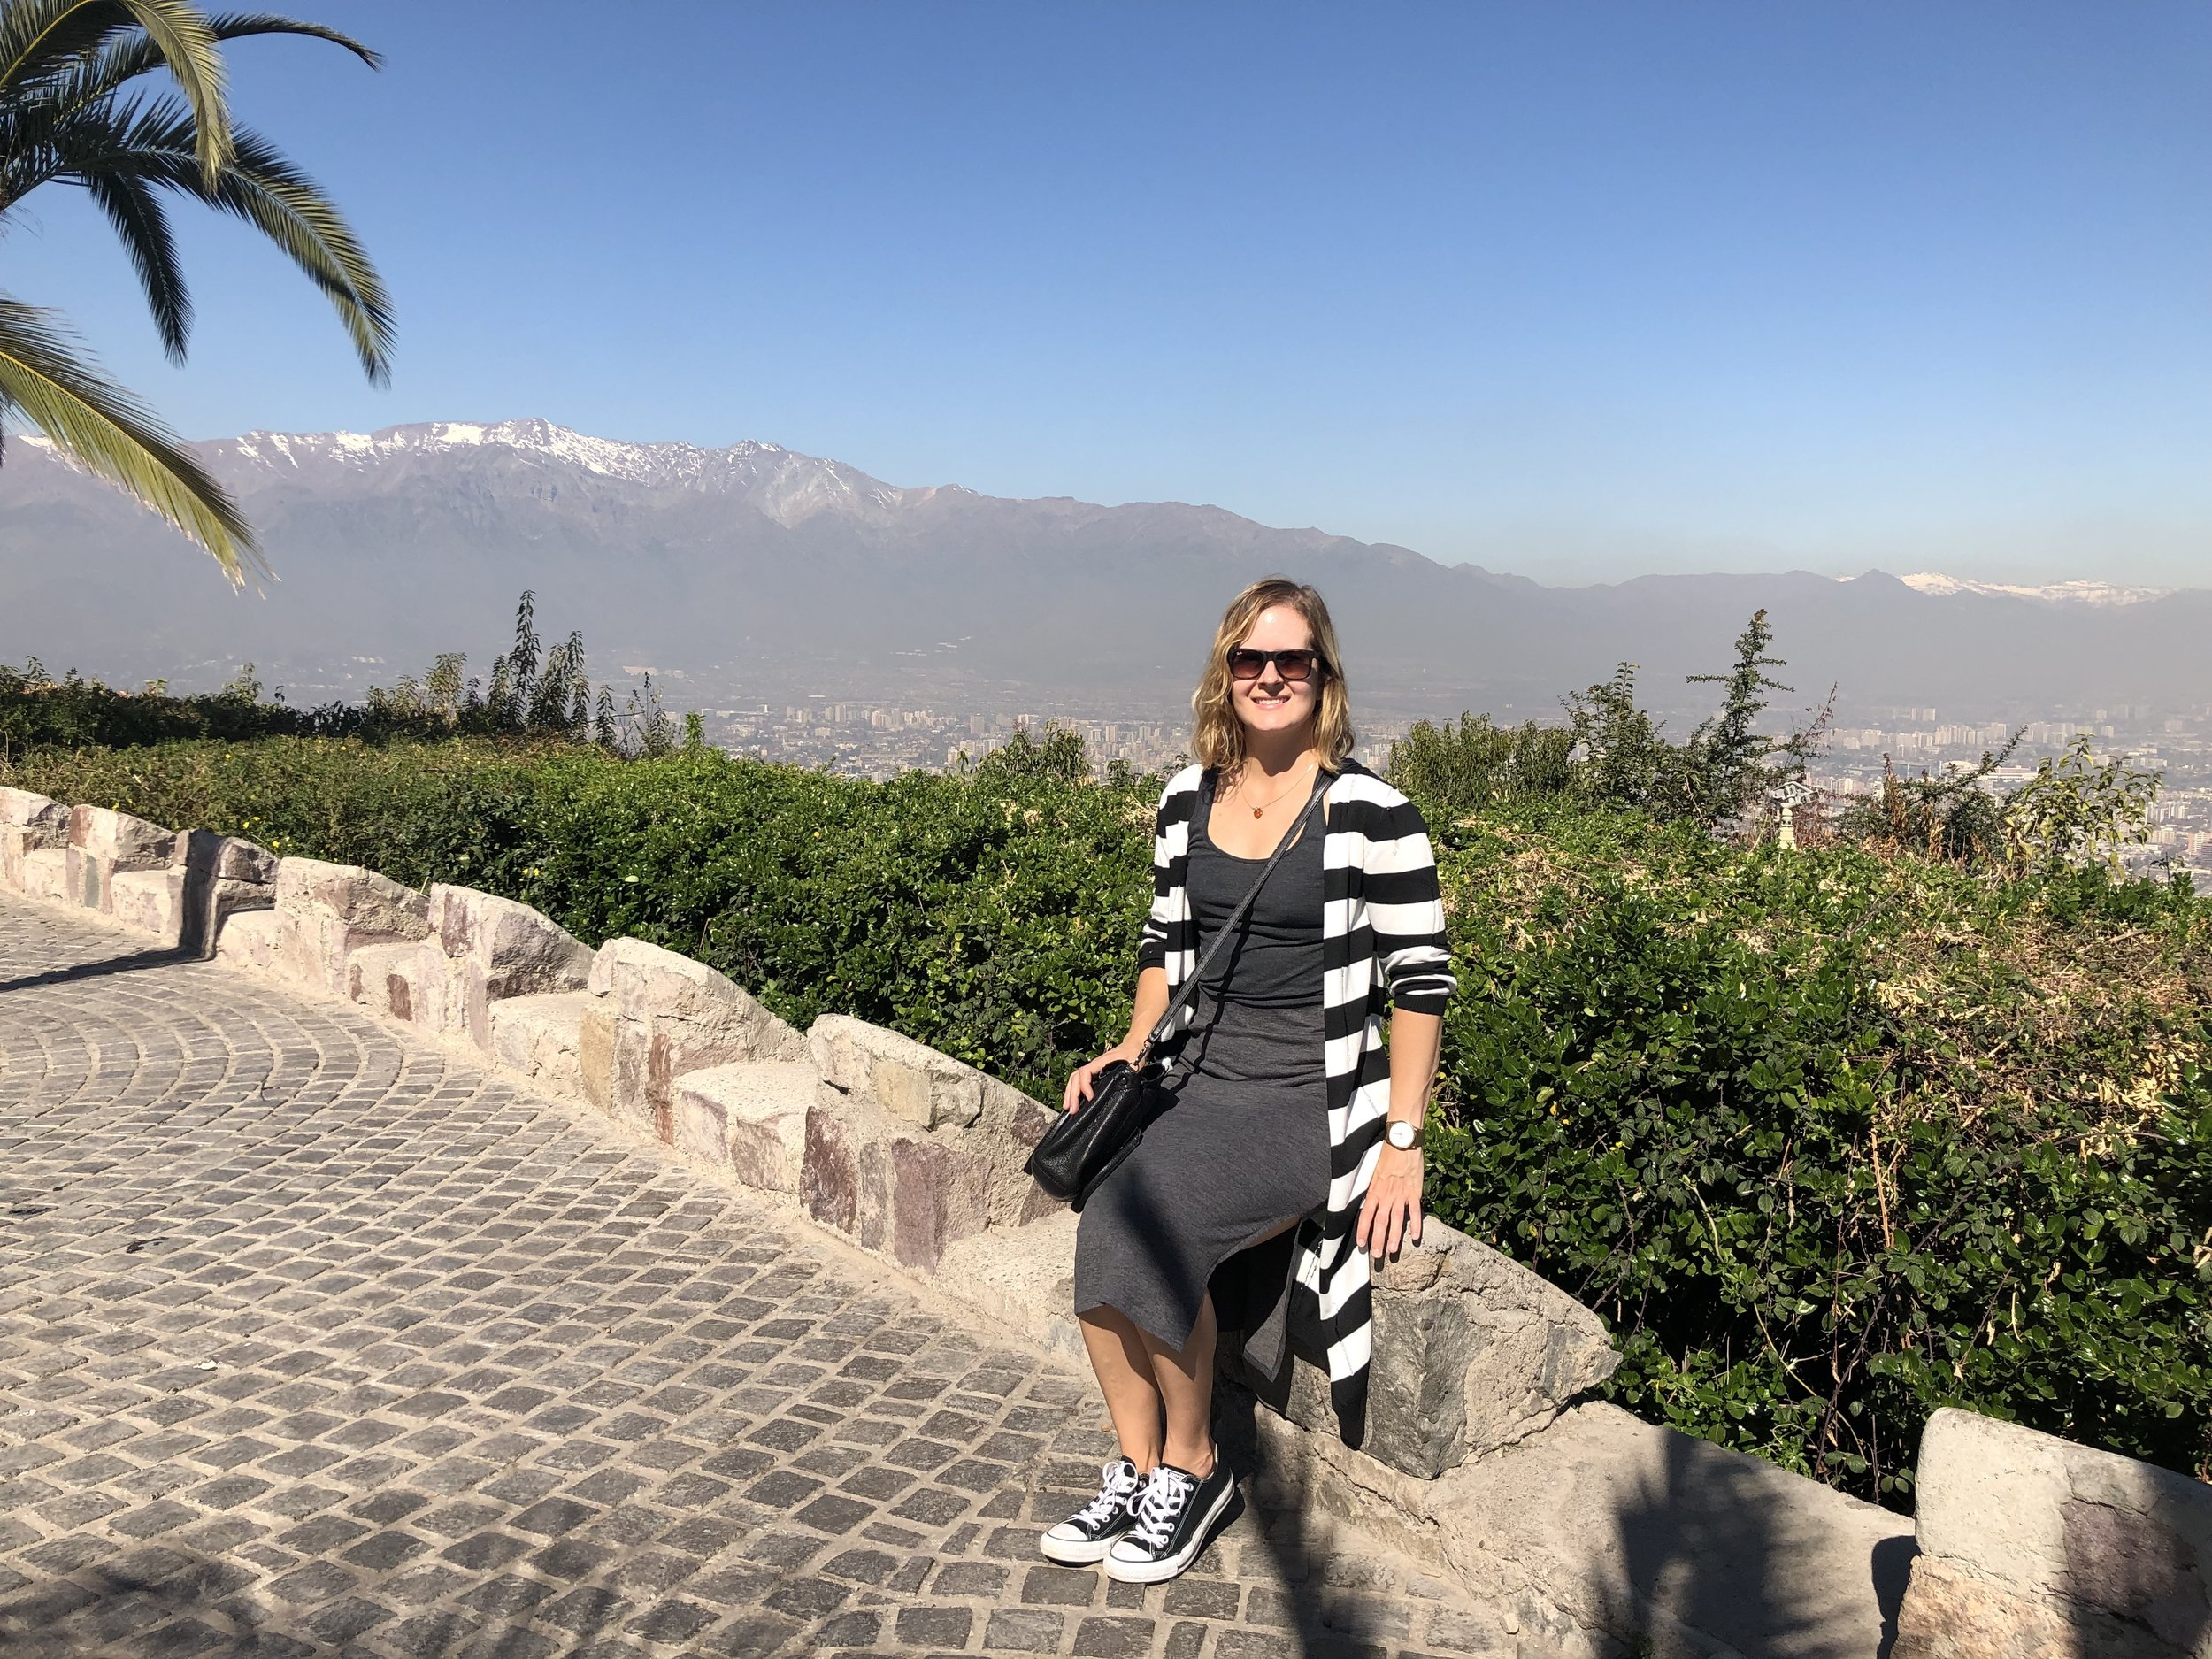 At the top of the cerro (hill) that overlooks Santiago and towards the Andes.